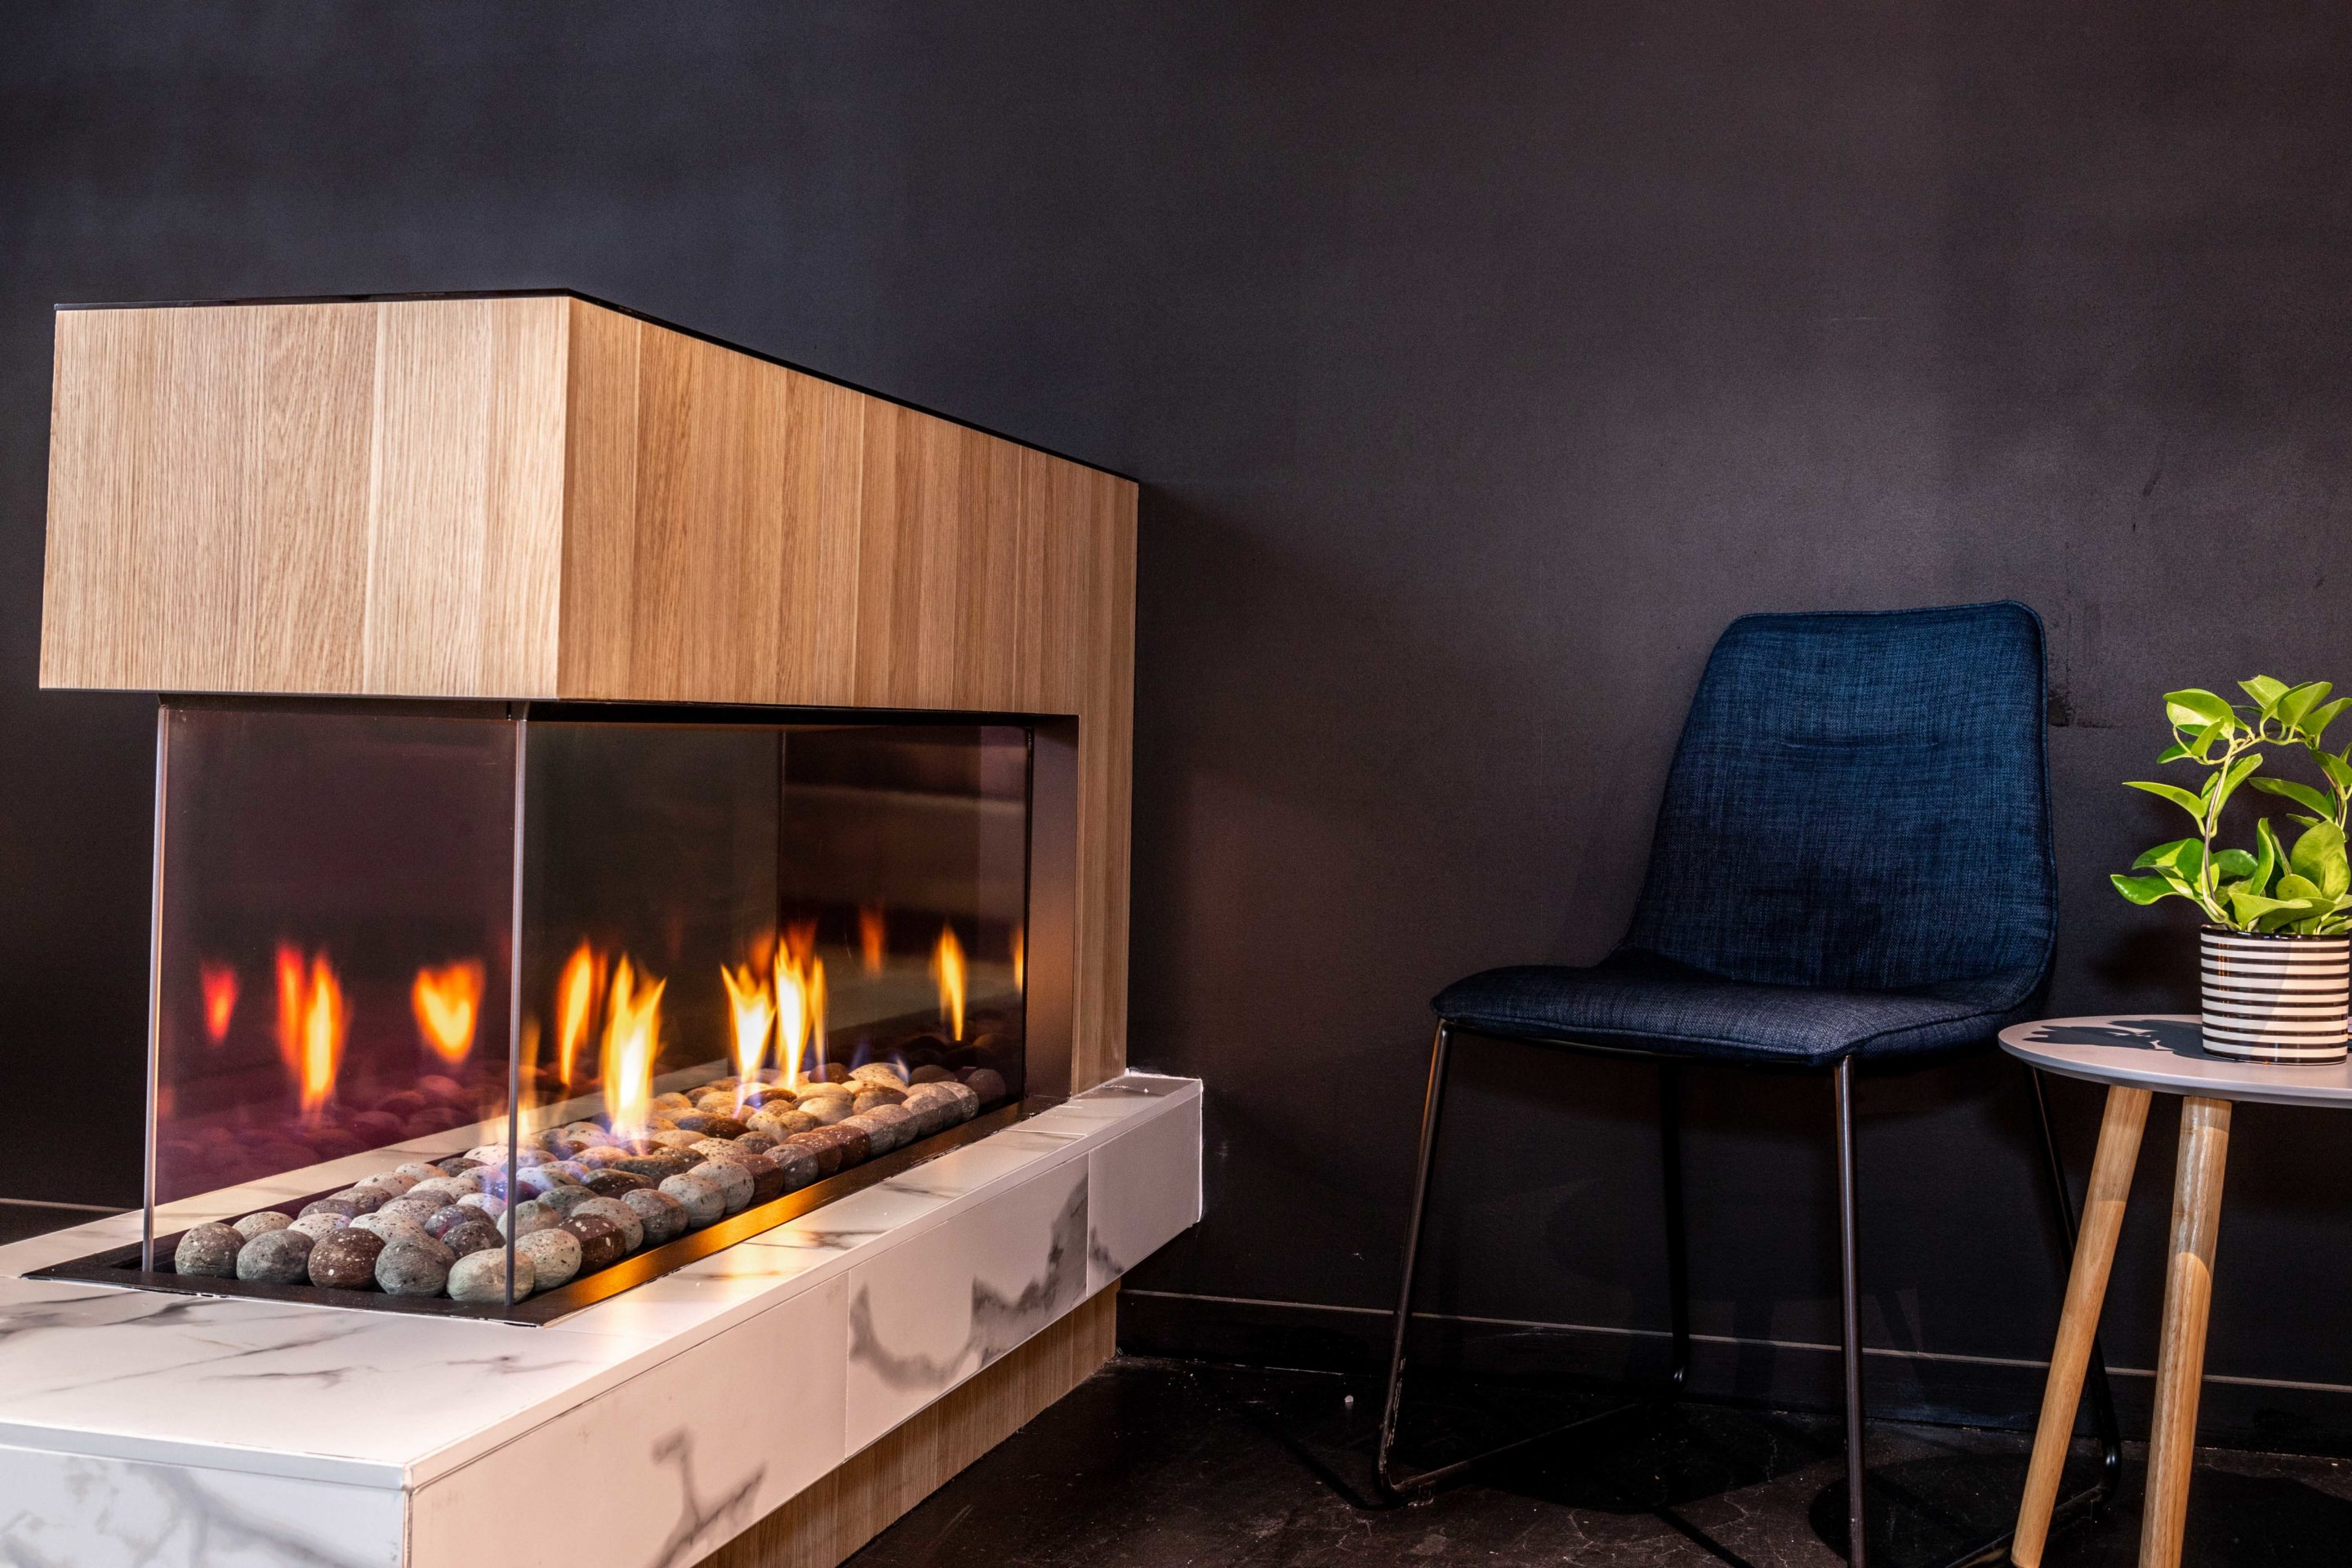 Chimney, interior wall and mantel gas log fires featured in sleek and modern stone-finished flooring on display.